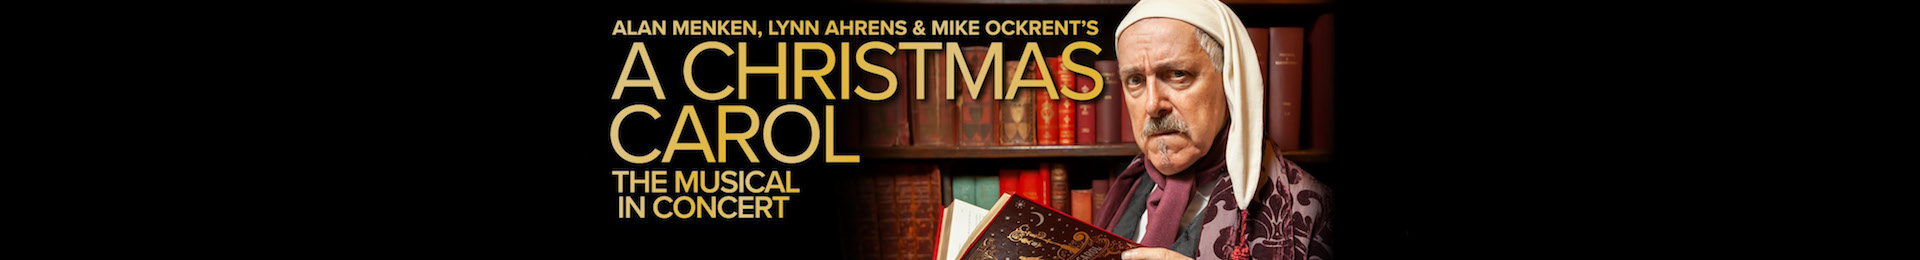 A Christmas Carol by Alan Menken, Lynn Ahrens and Mike Ockrent banner image